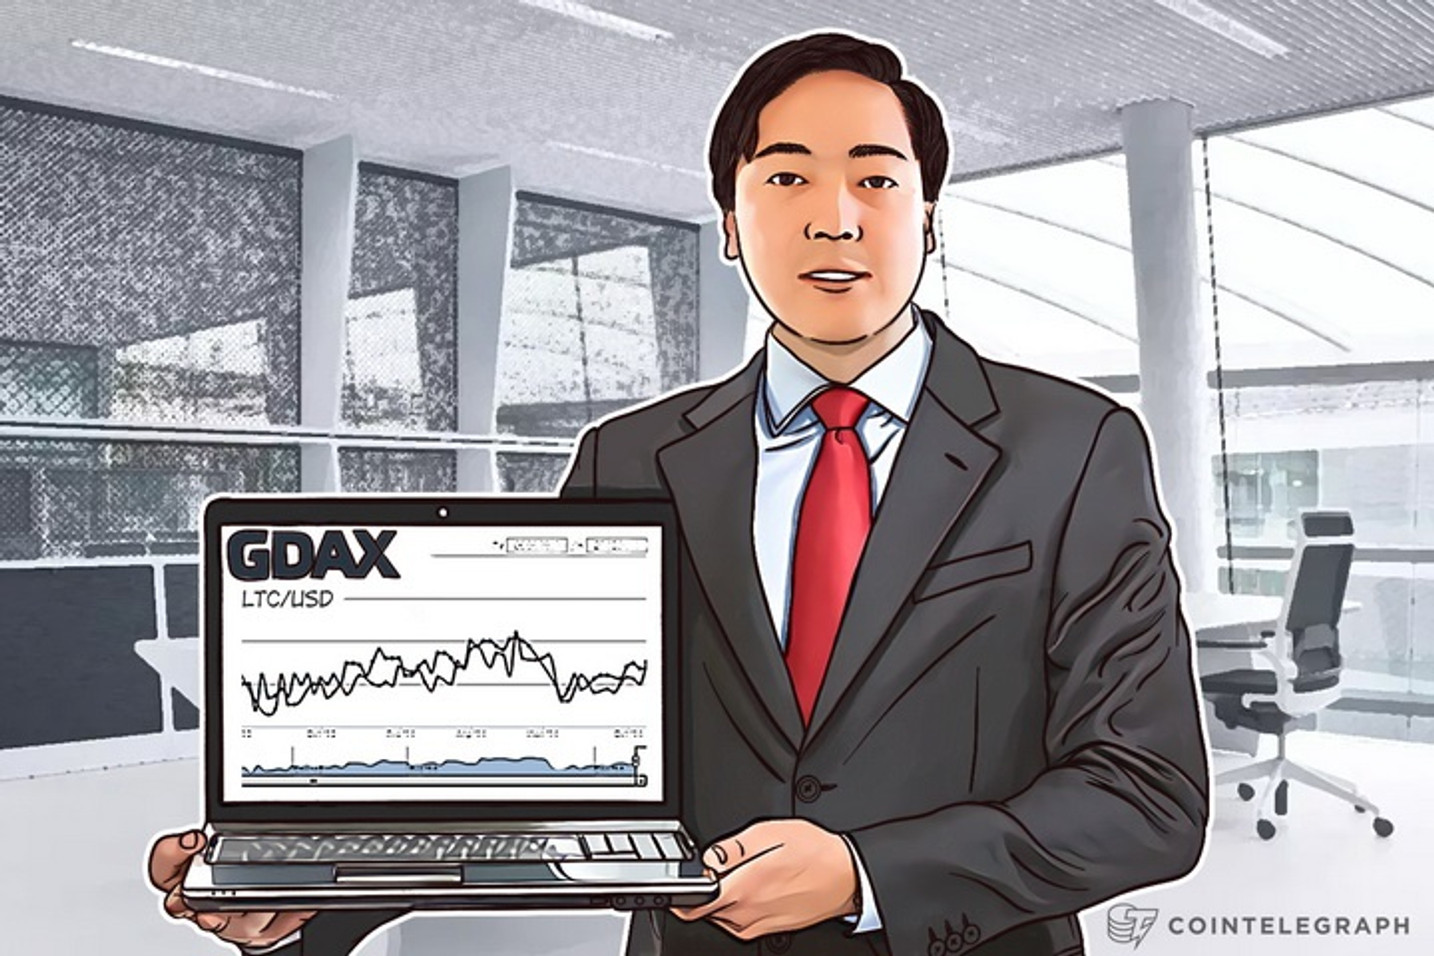 Litecoin Price Surges as GDAX Adds Litecoin-Dollar Trading